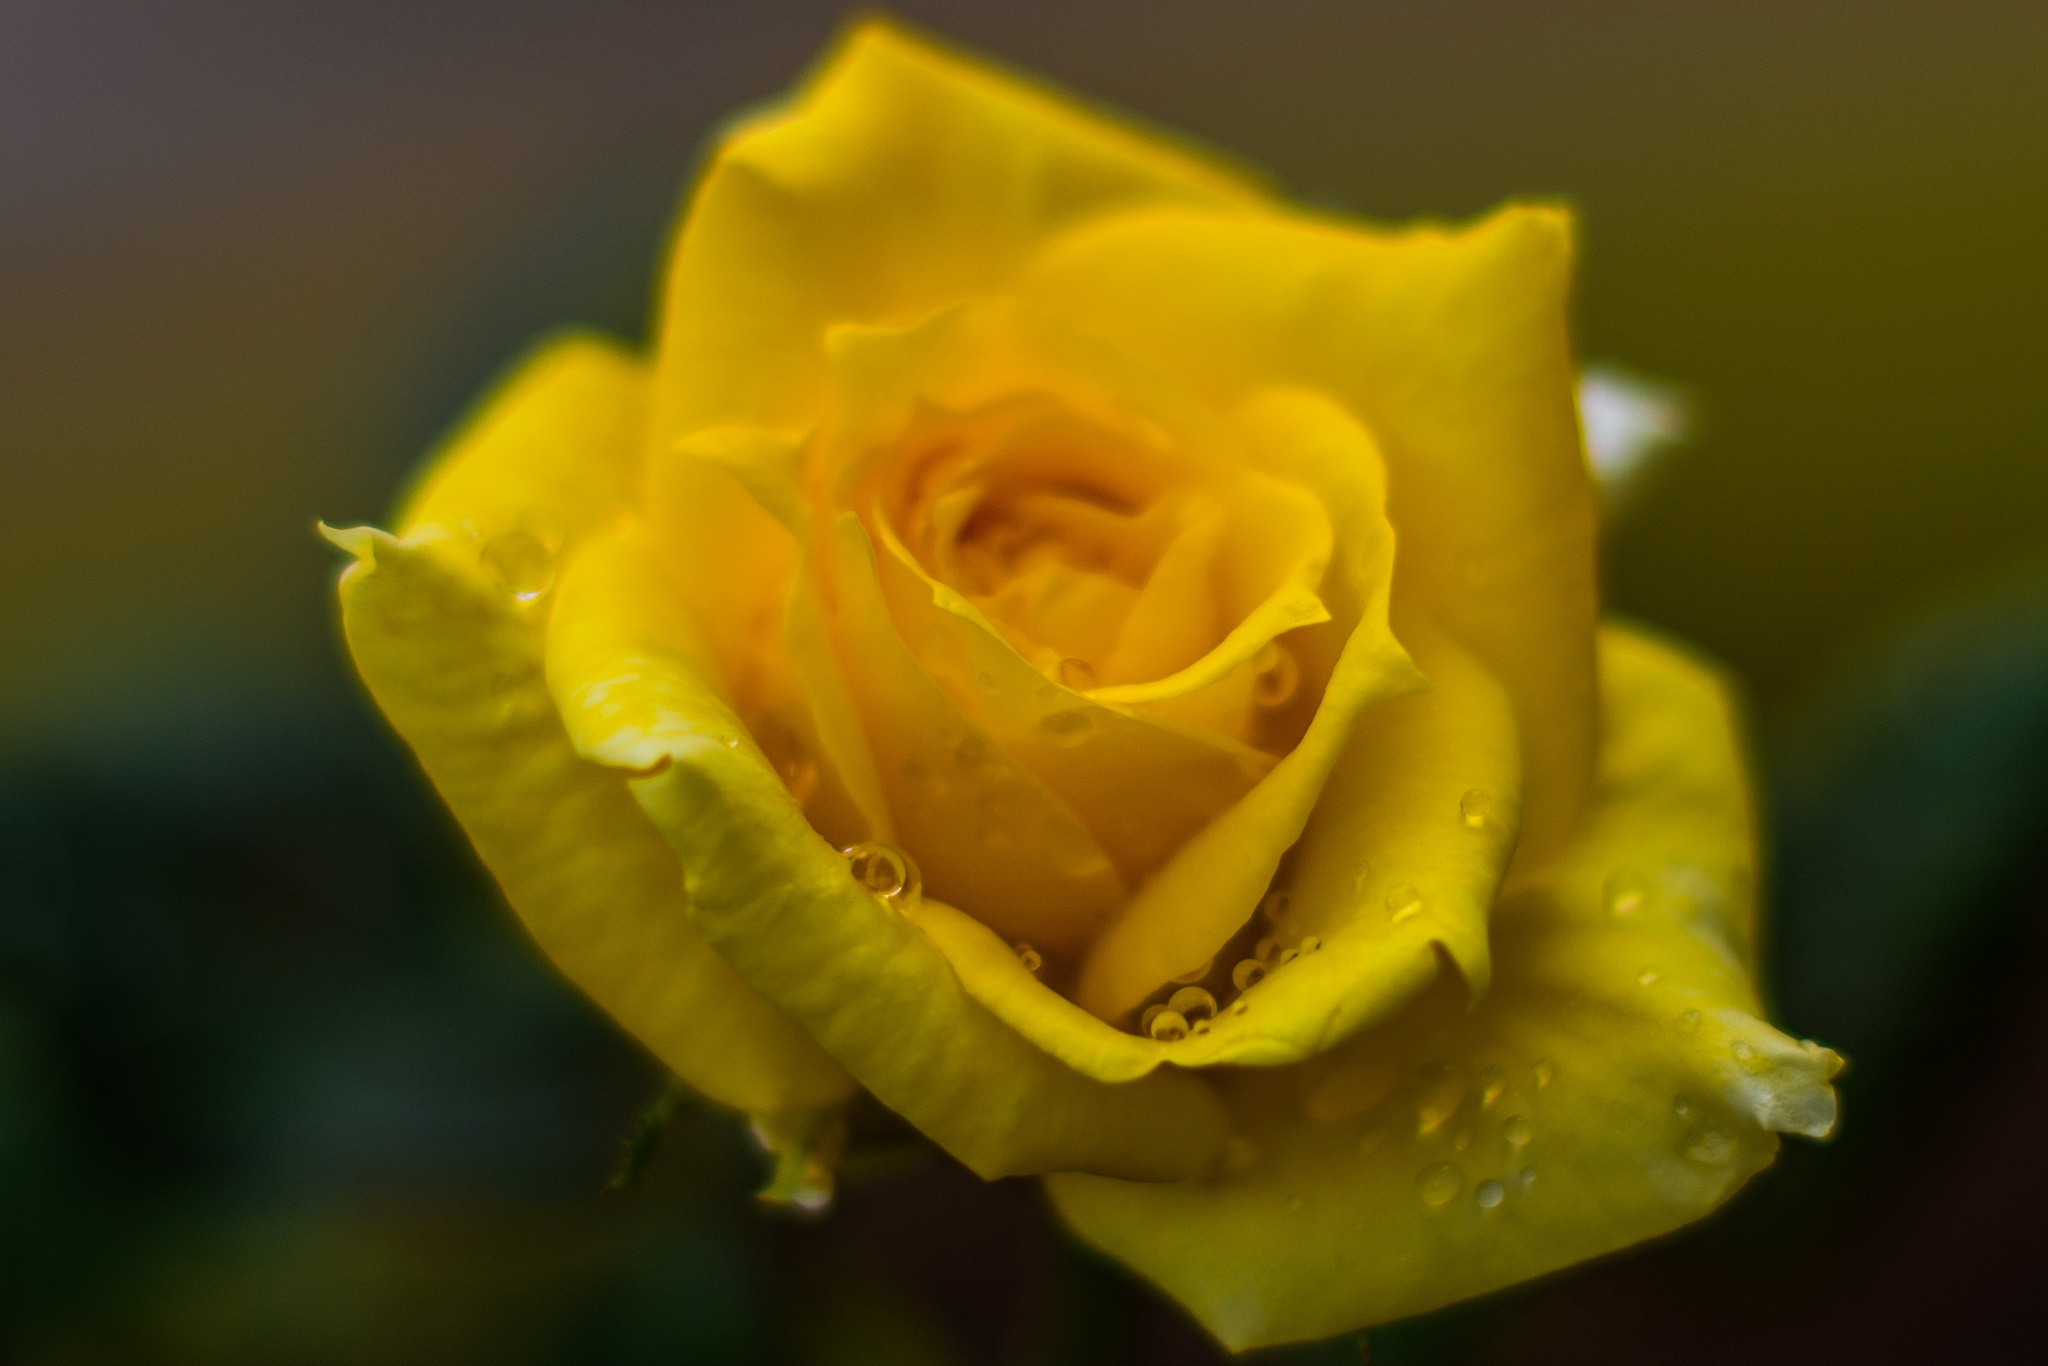 Yellow Rose of Texas by Ed